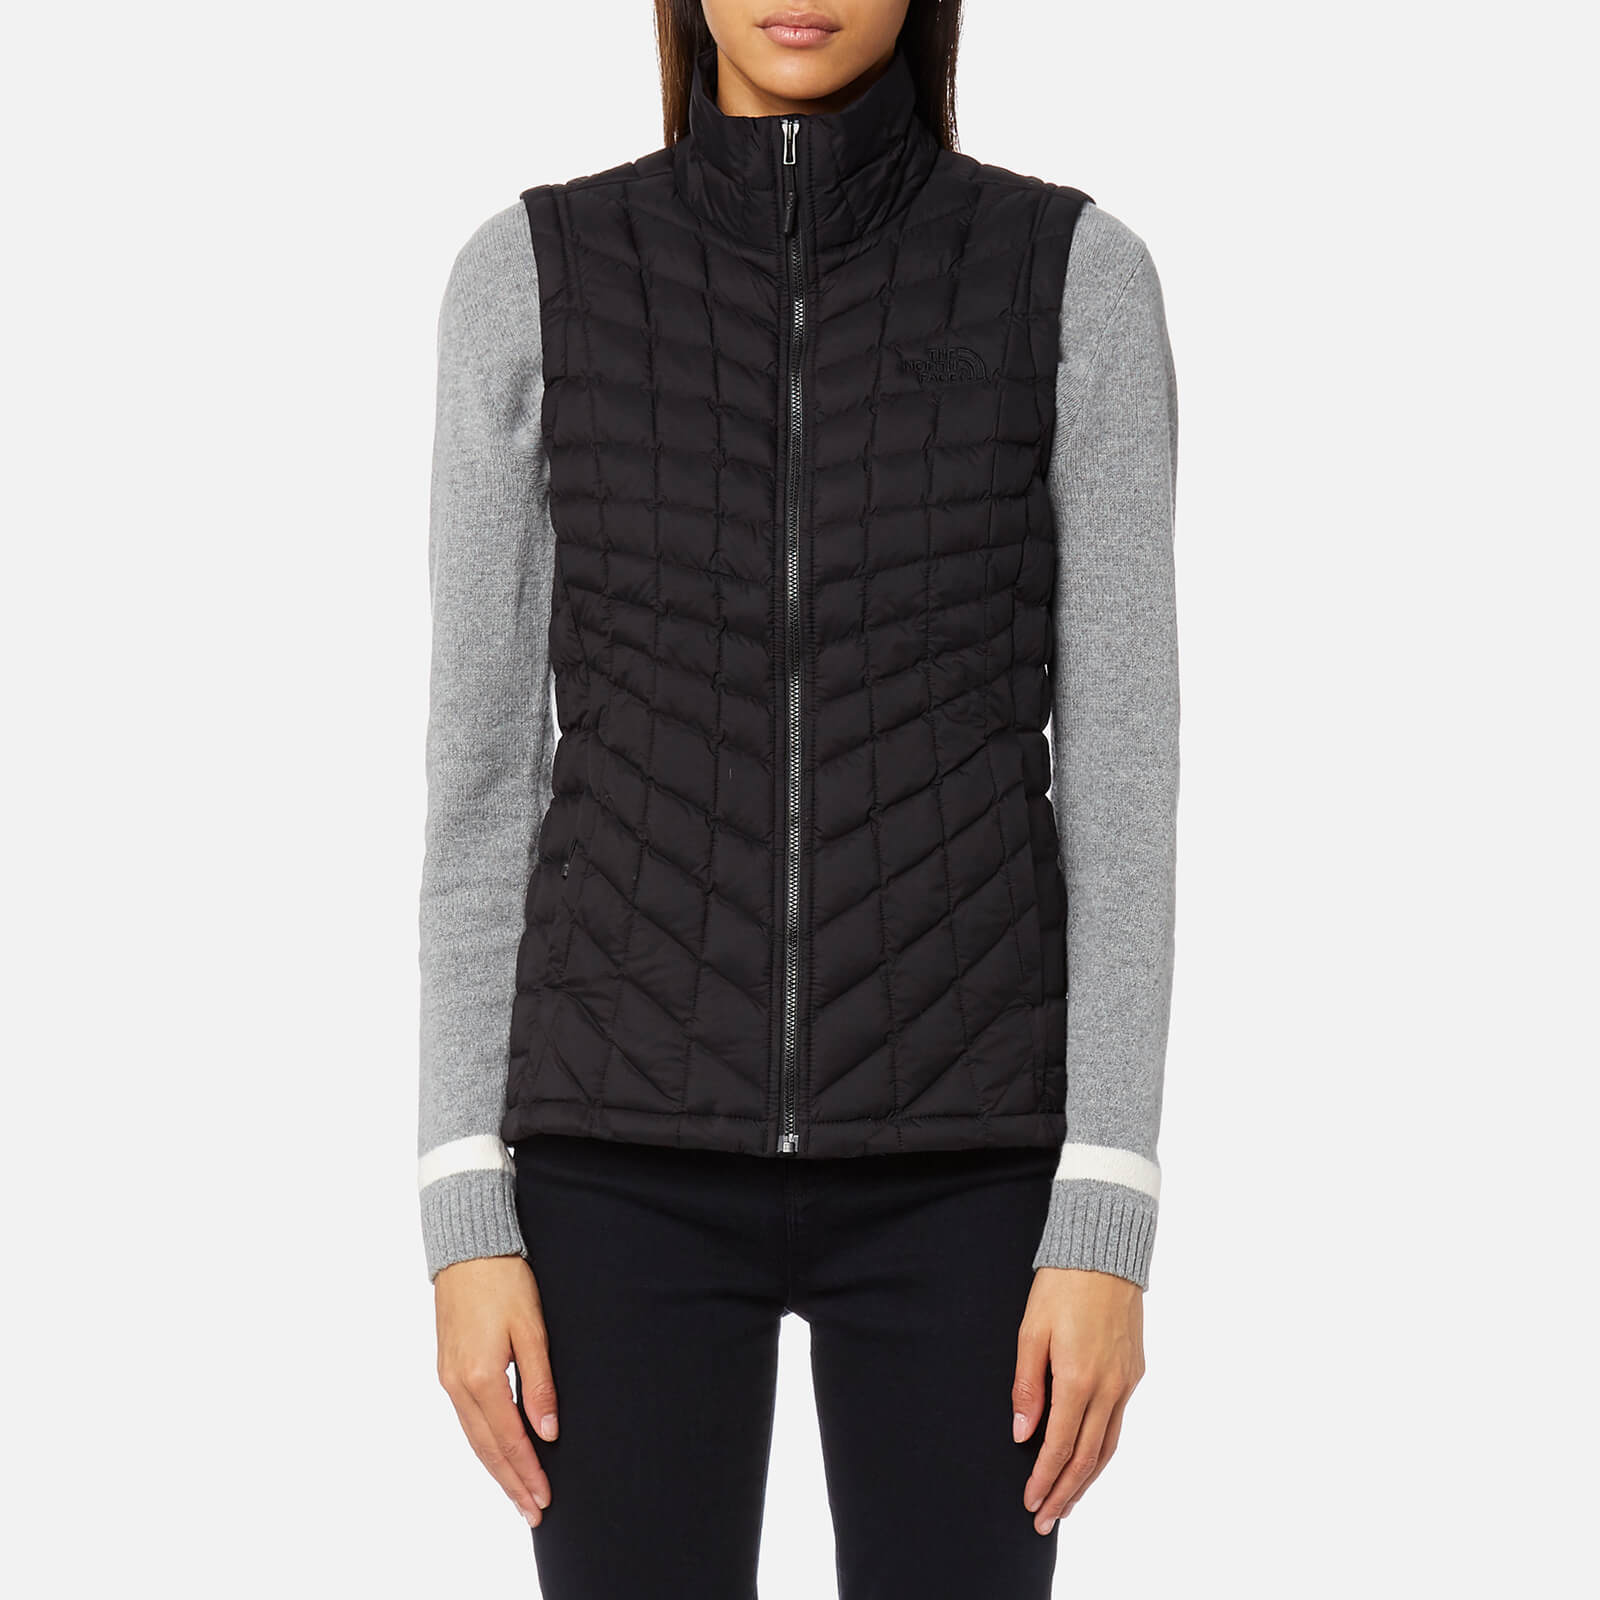 THE NORTH FACE Womens Thermo Ball Gilet Vest Ladies Top Sleeveless Jacket Black